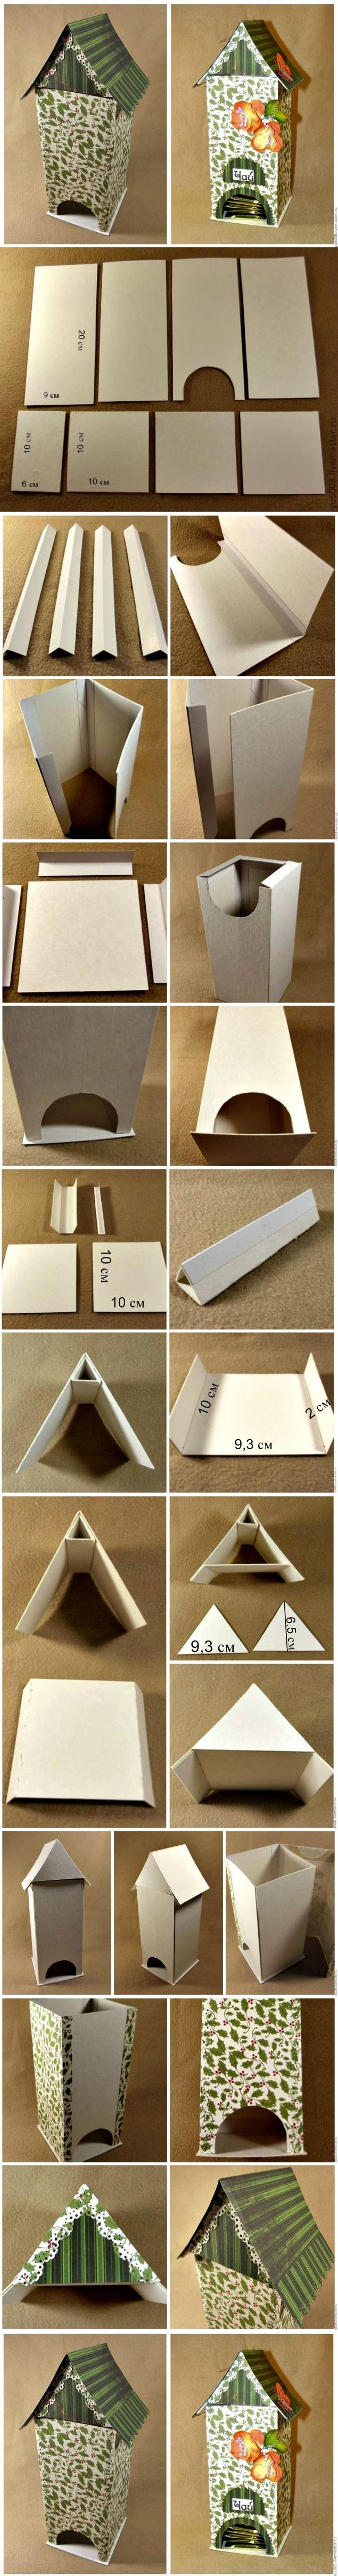 DIY Bird House Shaped Cardboard Tea Bag Dispenser | iCreativeIdeas.com